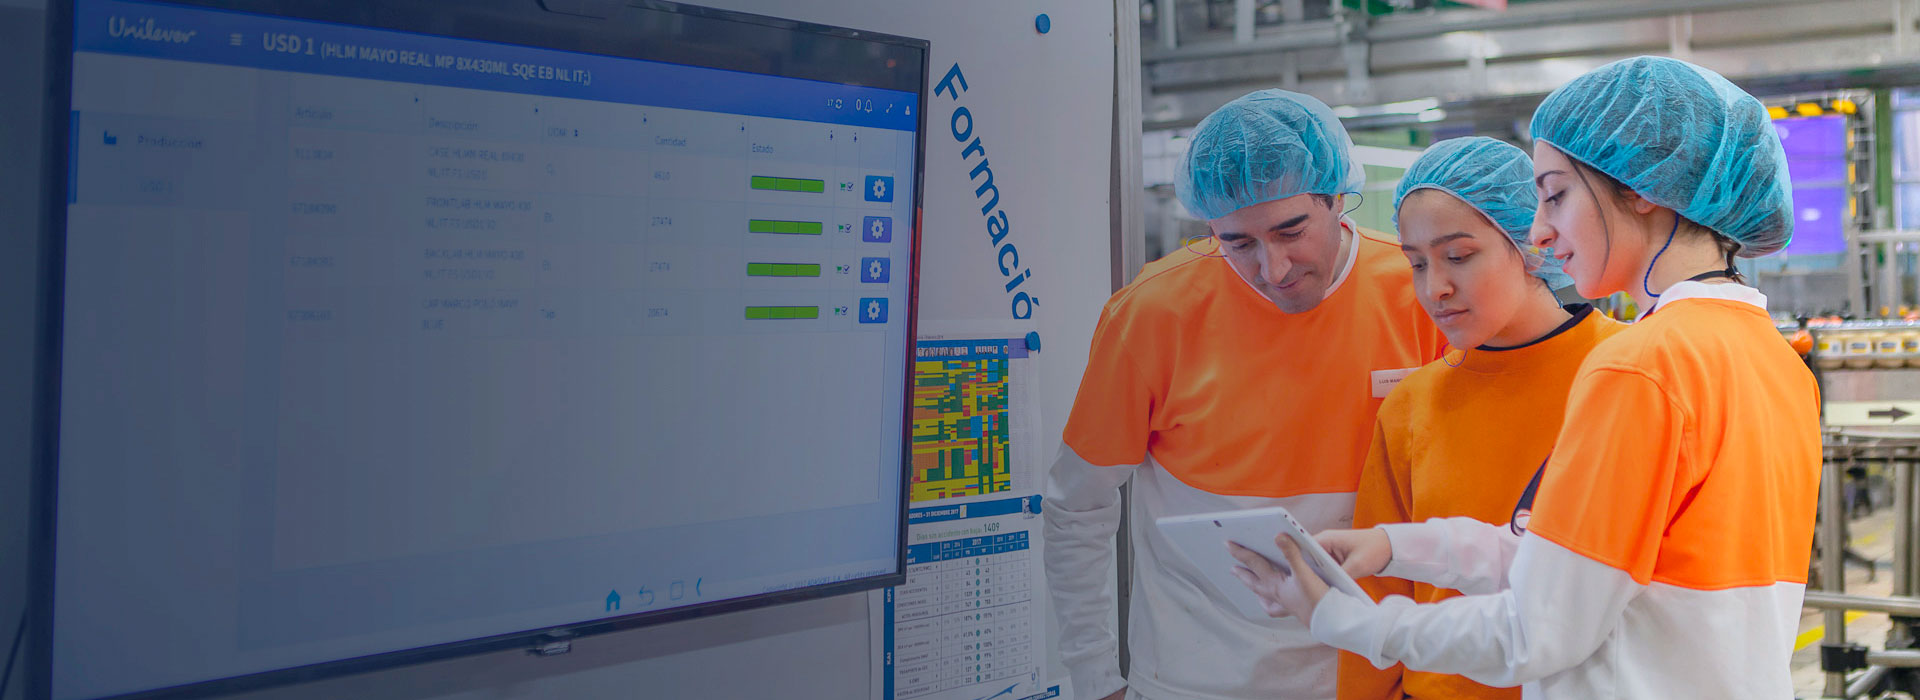 Group of factory workers discussing work on iPad with large wall screen next to them showing data